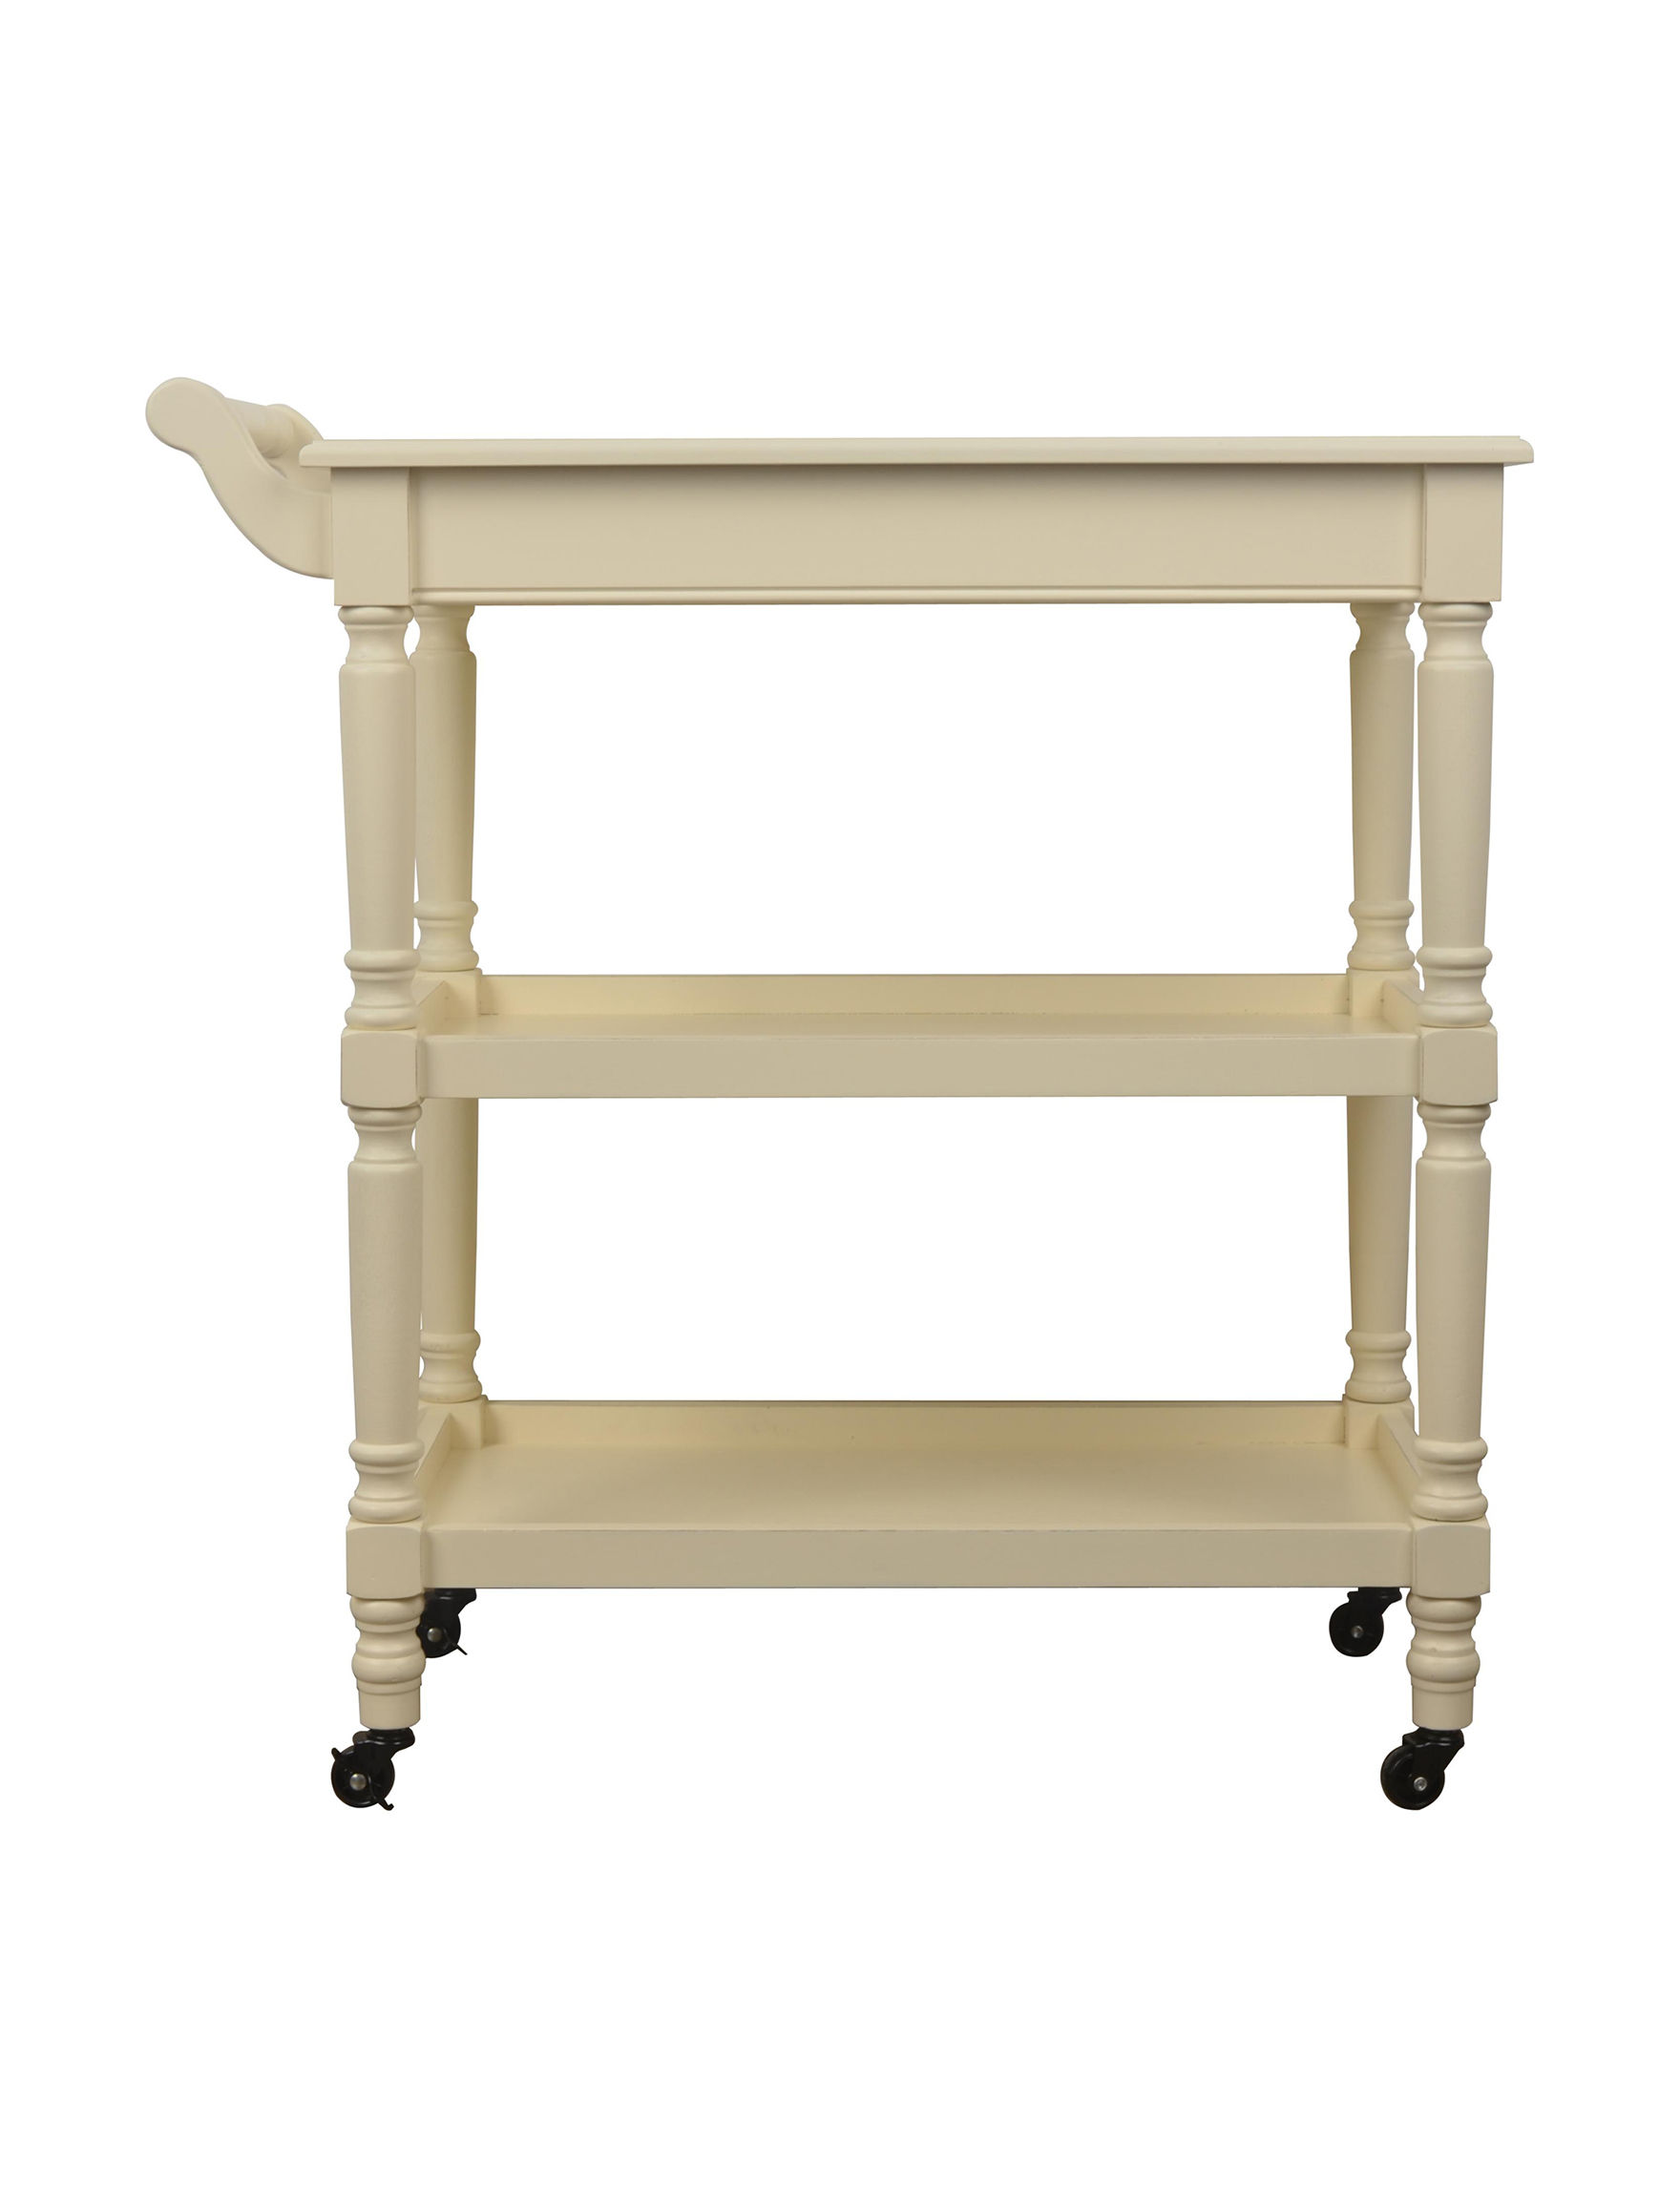 Decor Therapy White Bar & Wine Storage Kitchen Islands & Carts Kitchen & Dining Furniture